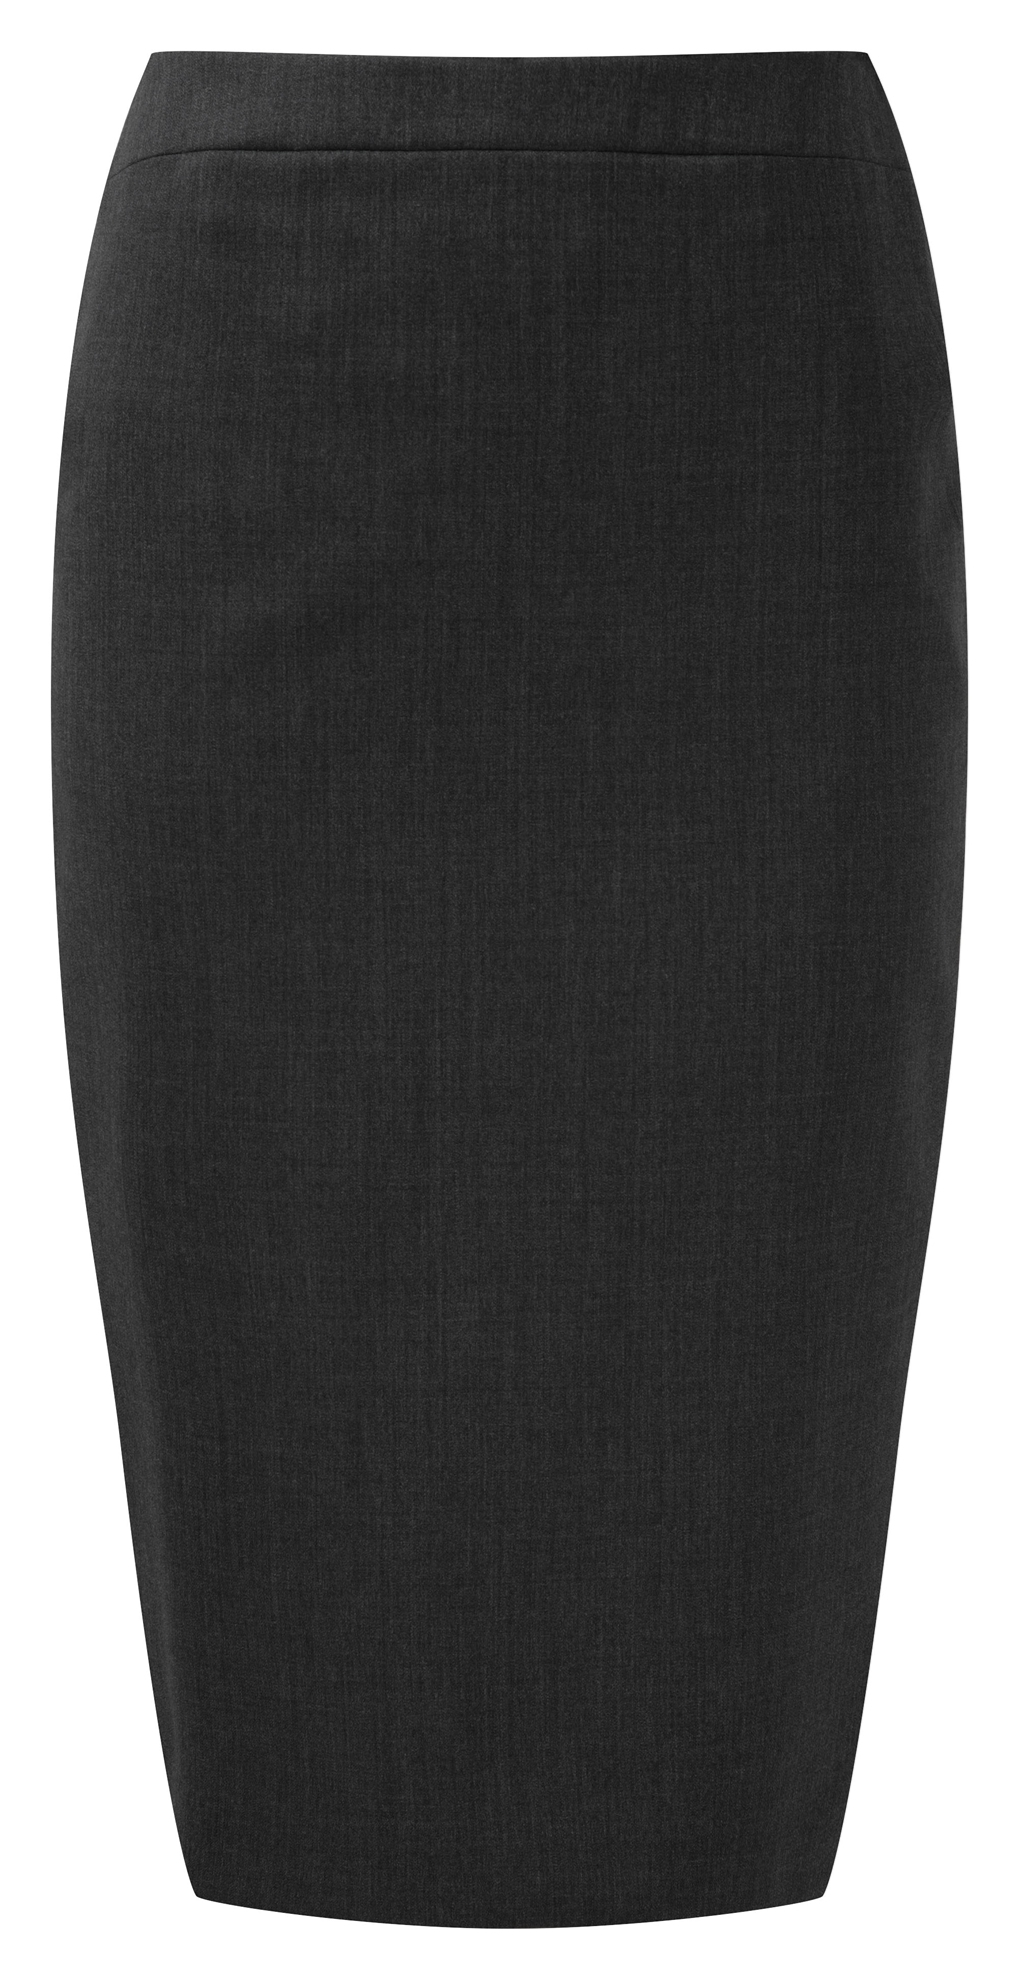 Picture of Wyndham Straight Skirt - Black